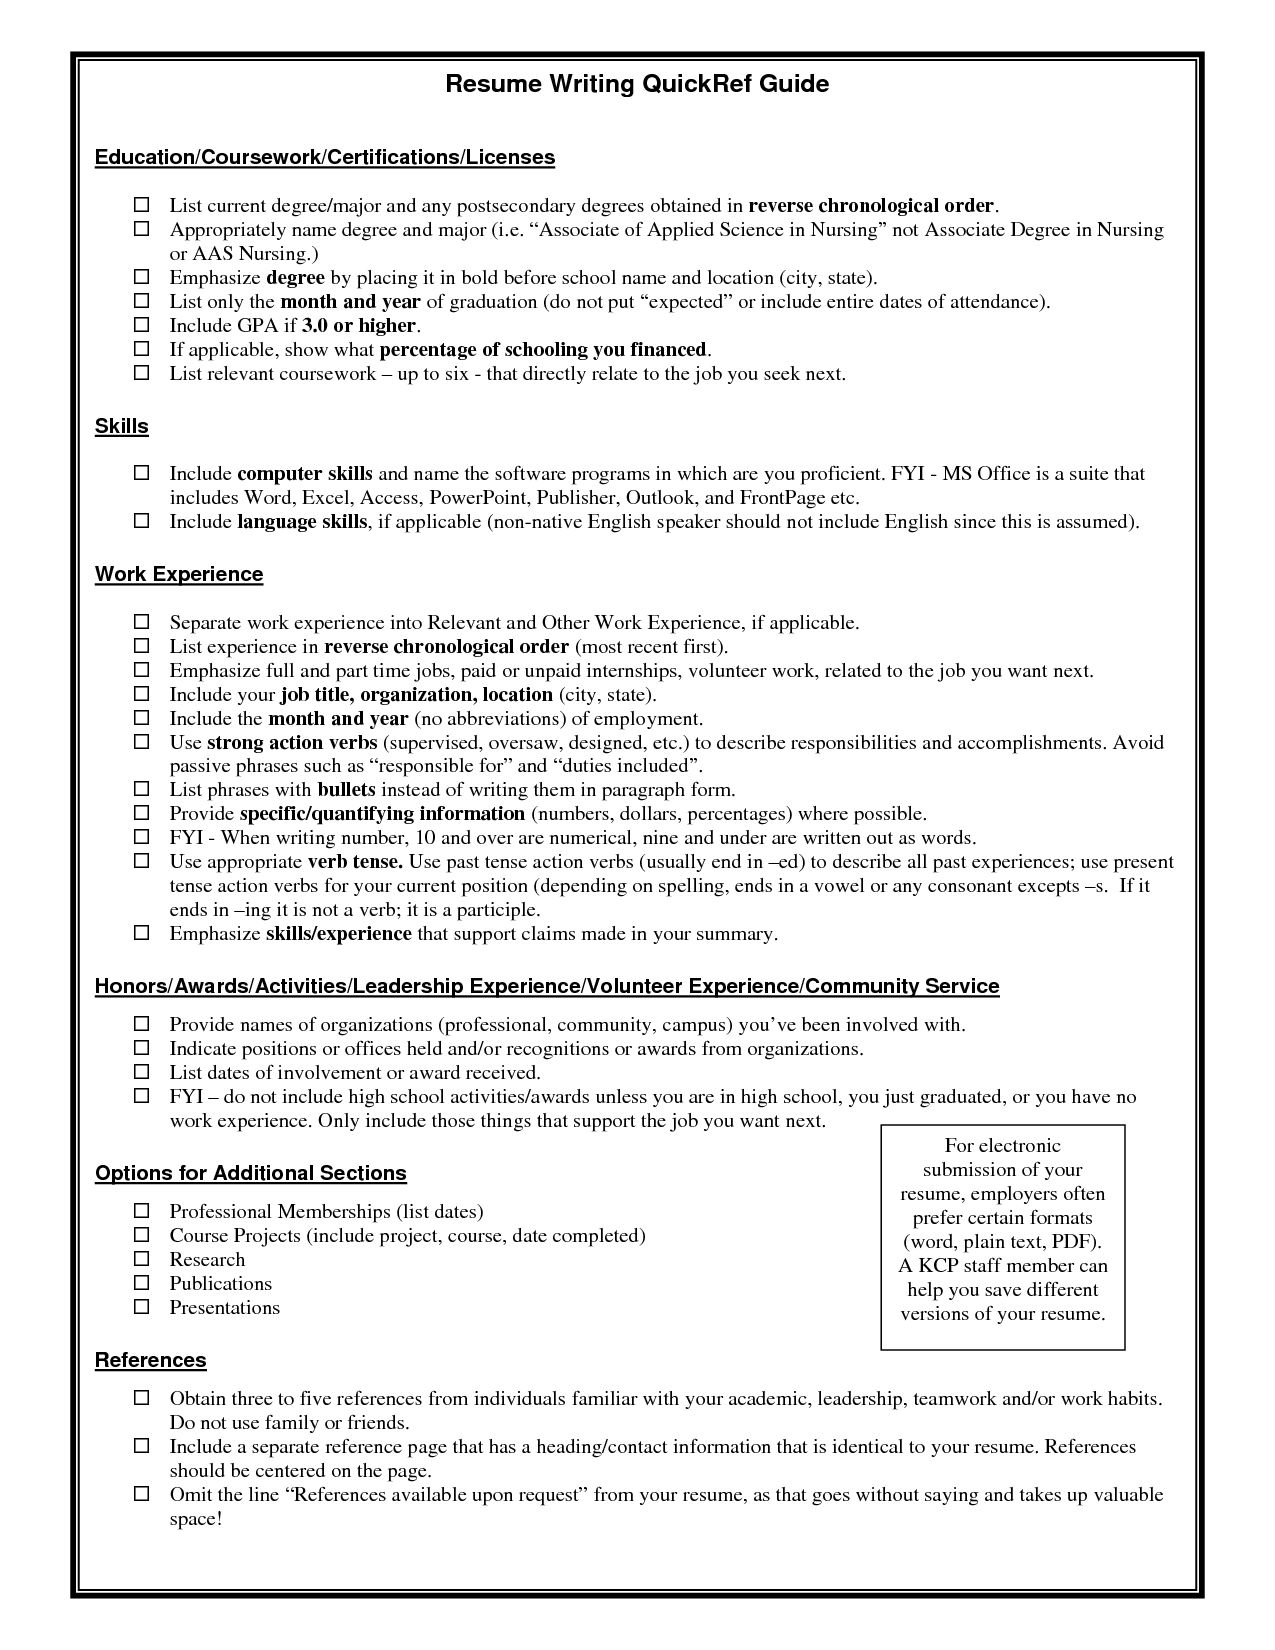 How To Include Certifications In Resume.Certifications On A Resume Certification On Resume Example